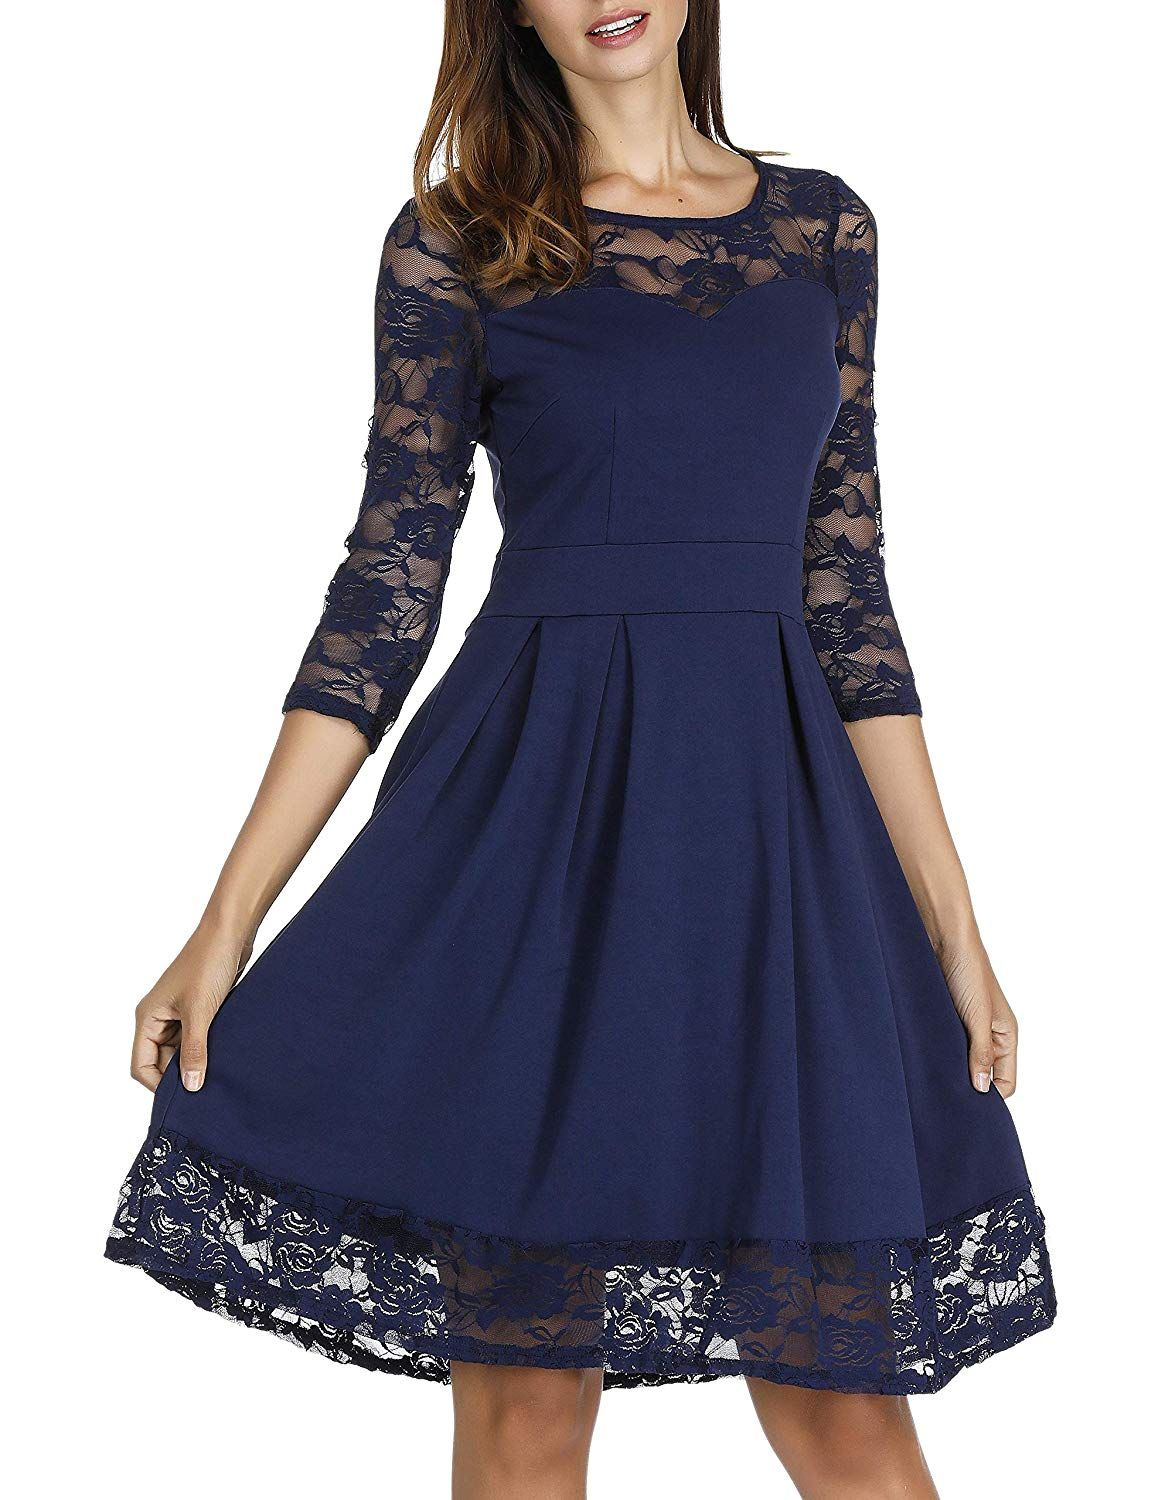 Akivide Women S Sleeveless 3 4 Sleeve Cocktail Lace Wedding Guest Dresses More Information Wedding Guest Dress Lace Wedding Guest Dress Cheap Wedding Dress [ 1500 x 1165 Pixel ]